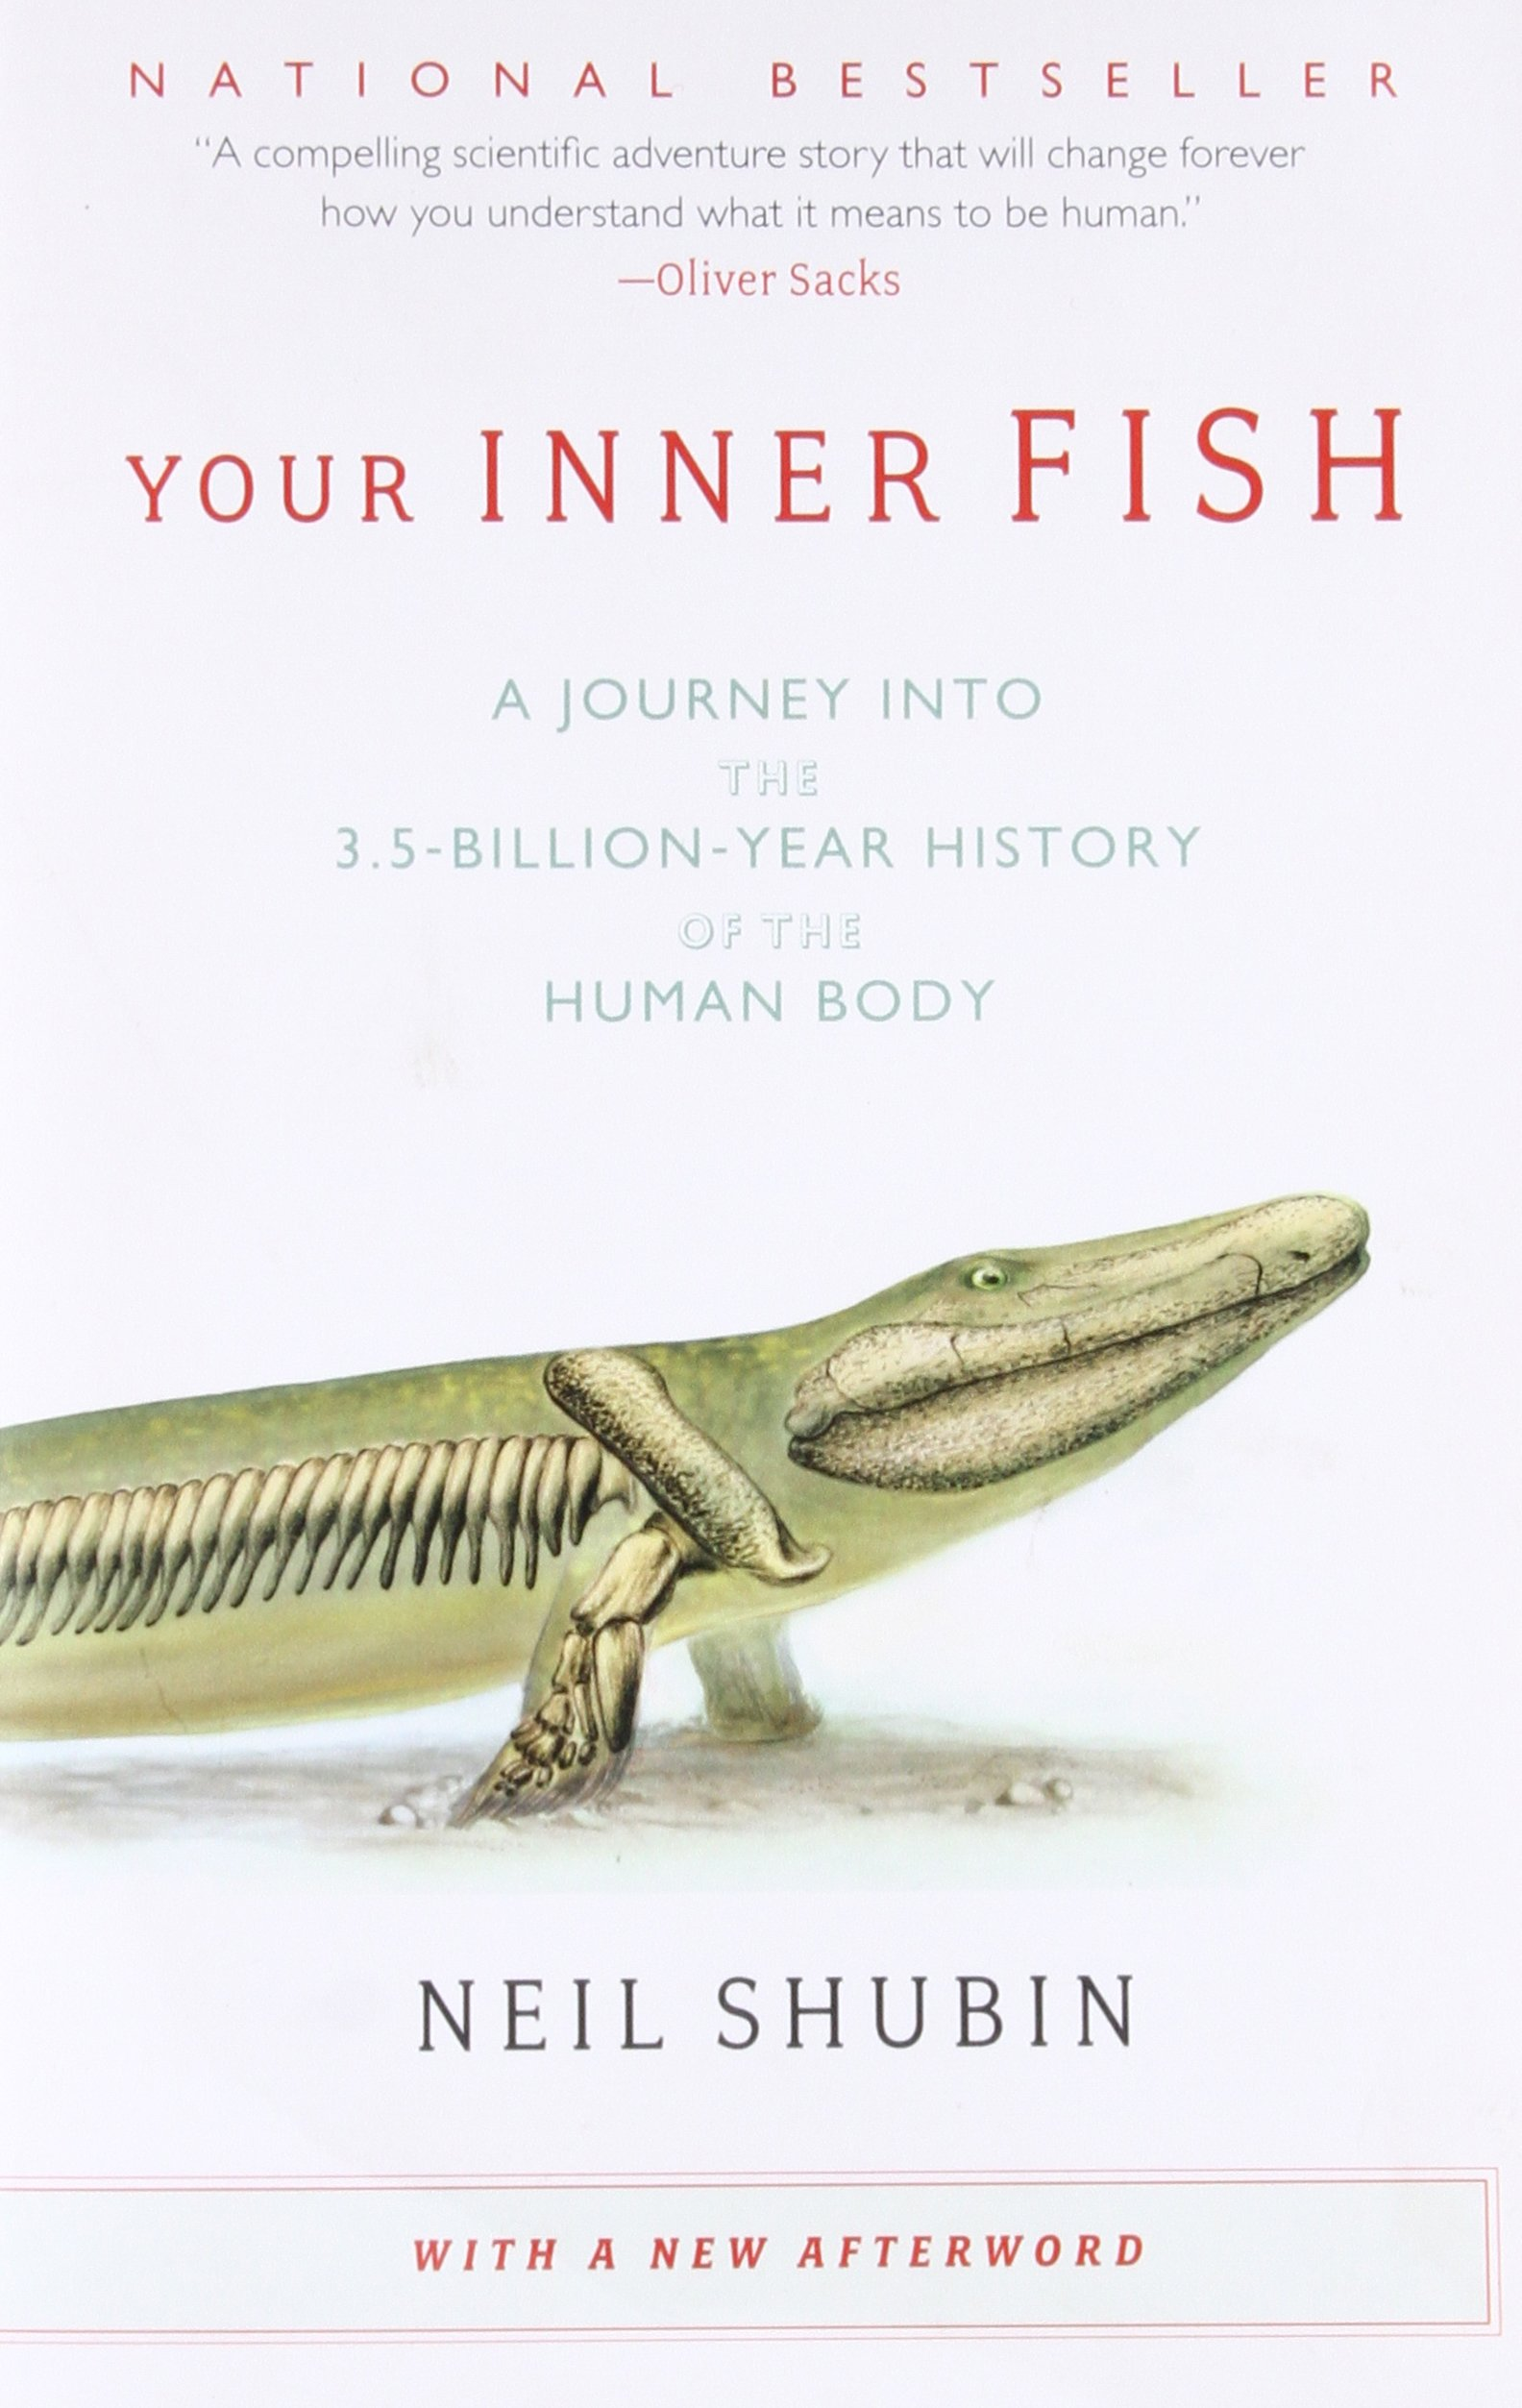 Your inner fish a journey into the 35 billion year history of your inner fish a journey into the 35 billion year history of the human body neil shubin 8601400082775 amazon books fandeluxe Image collections